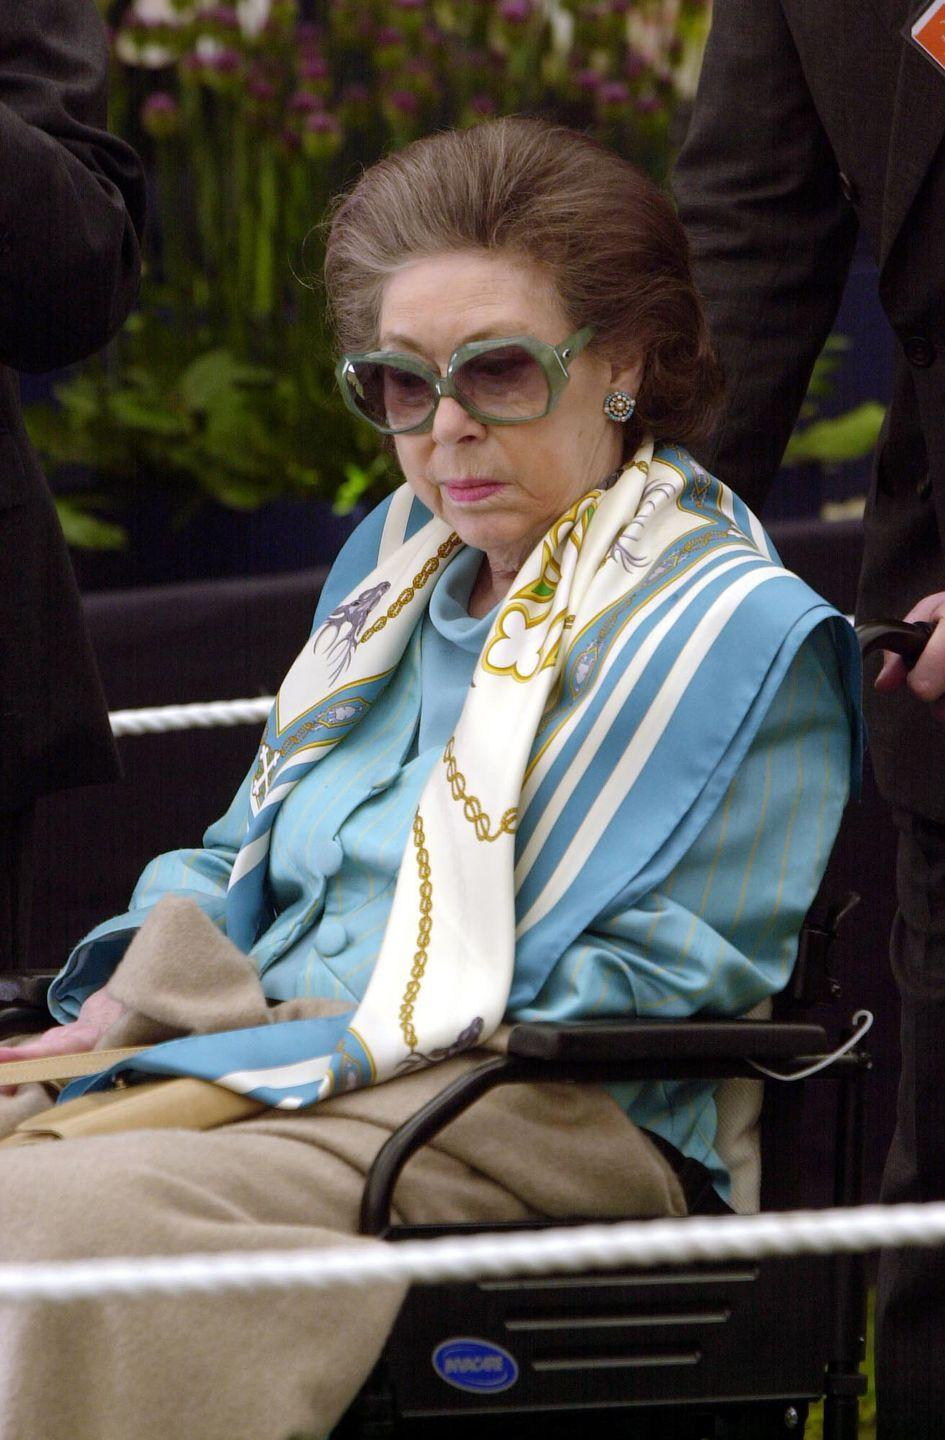 <p>After suffering a stroke, Princess Margaret was momentarily bound to a wheelchair. She made her first post-stroke public appearance at the Chelsea Flower Show in 2001. Margaret died on February 15, 2002. </p>